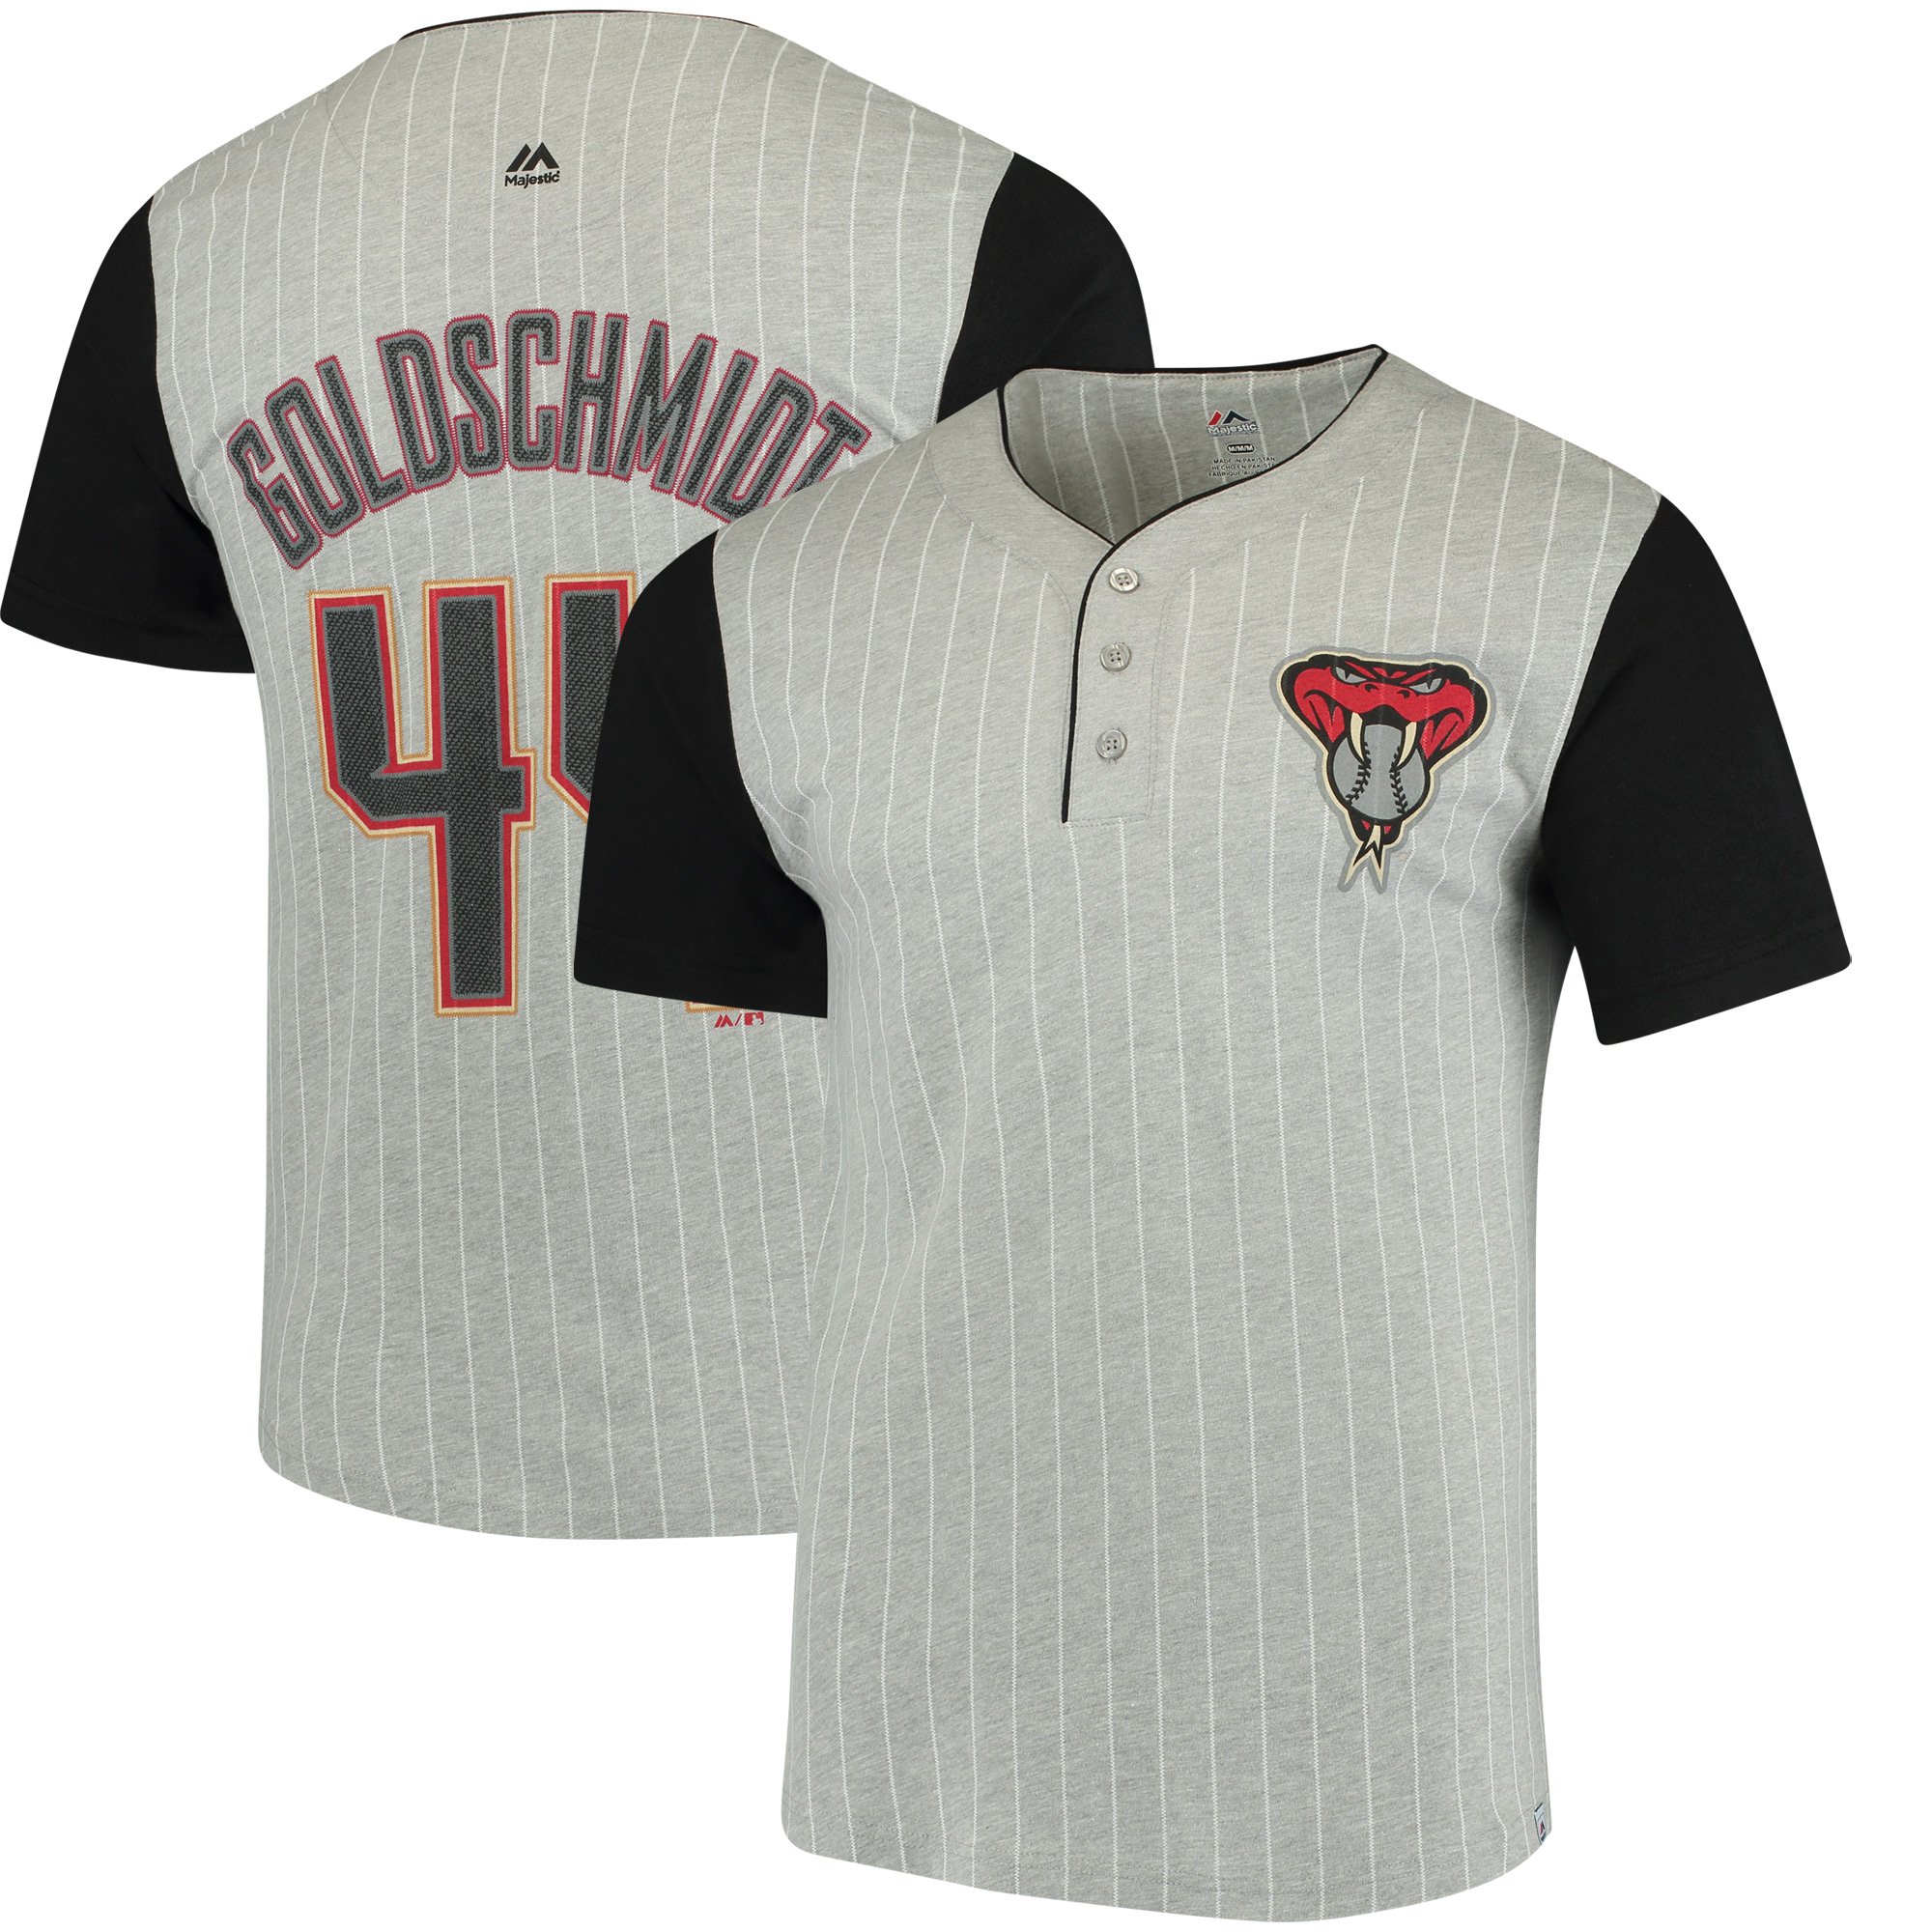 Paul Goldschmidt Arizona Diamondbacks Majestic From the Stretch Pinstripe T-Shirt - Gray/Black